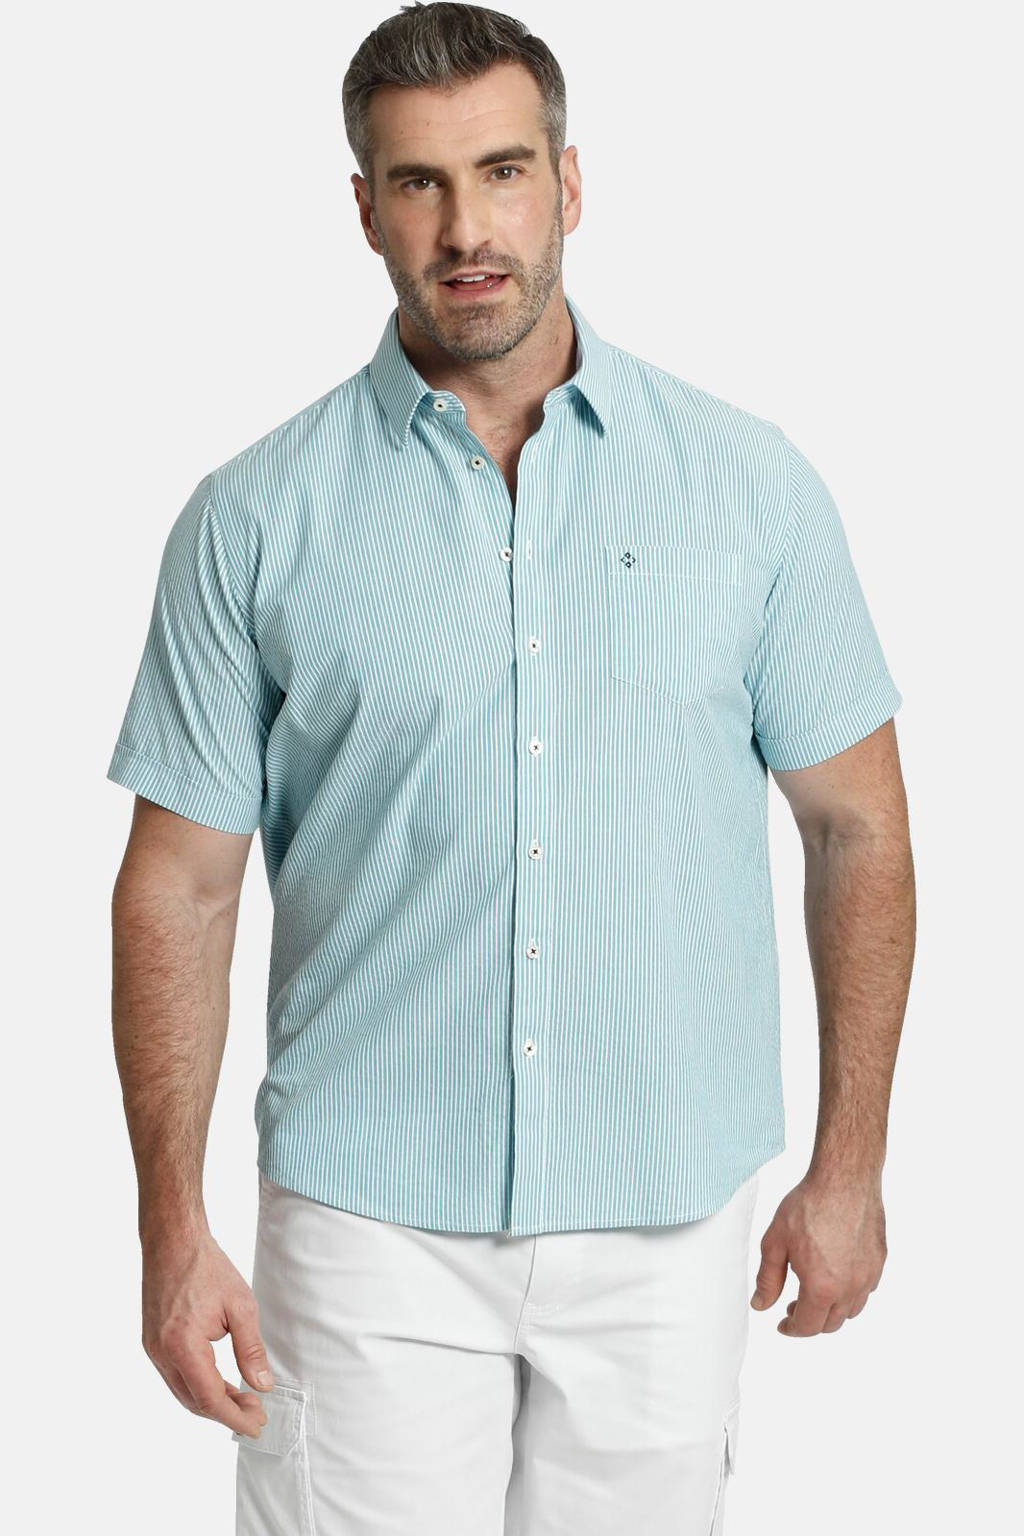 Charles Colby gestreept loose fit overhemd DUKE XERUS Plus Size turquoise, Turquoise